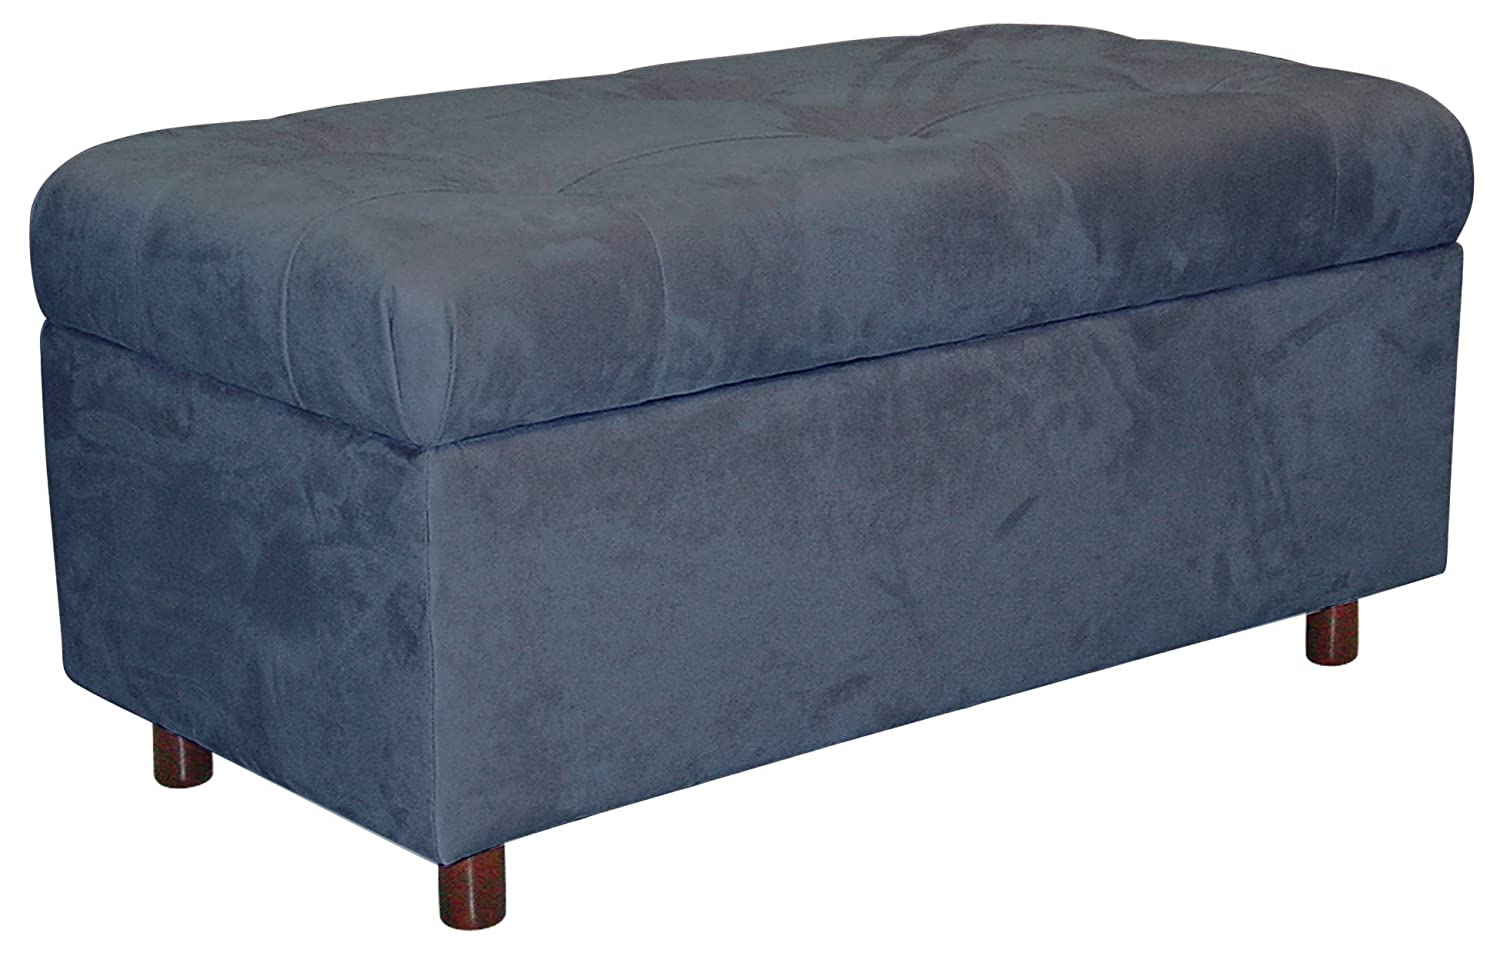 Amazon.com Skyline Furniture Belden Tufted Storage Bench by in Red Micro-suede Kitchen u0026 Dining  sc 1 st  Amazon.com & Amazon.com: Skyline Furniture Belden Tufted Storage Bench by in Red ...